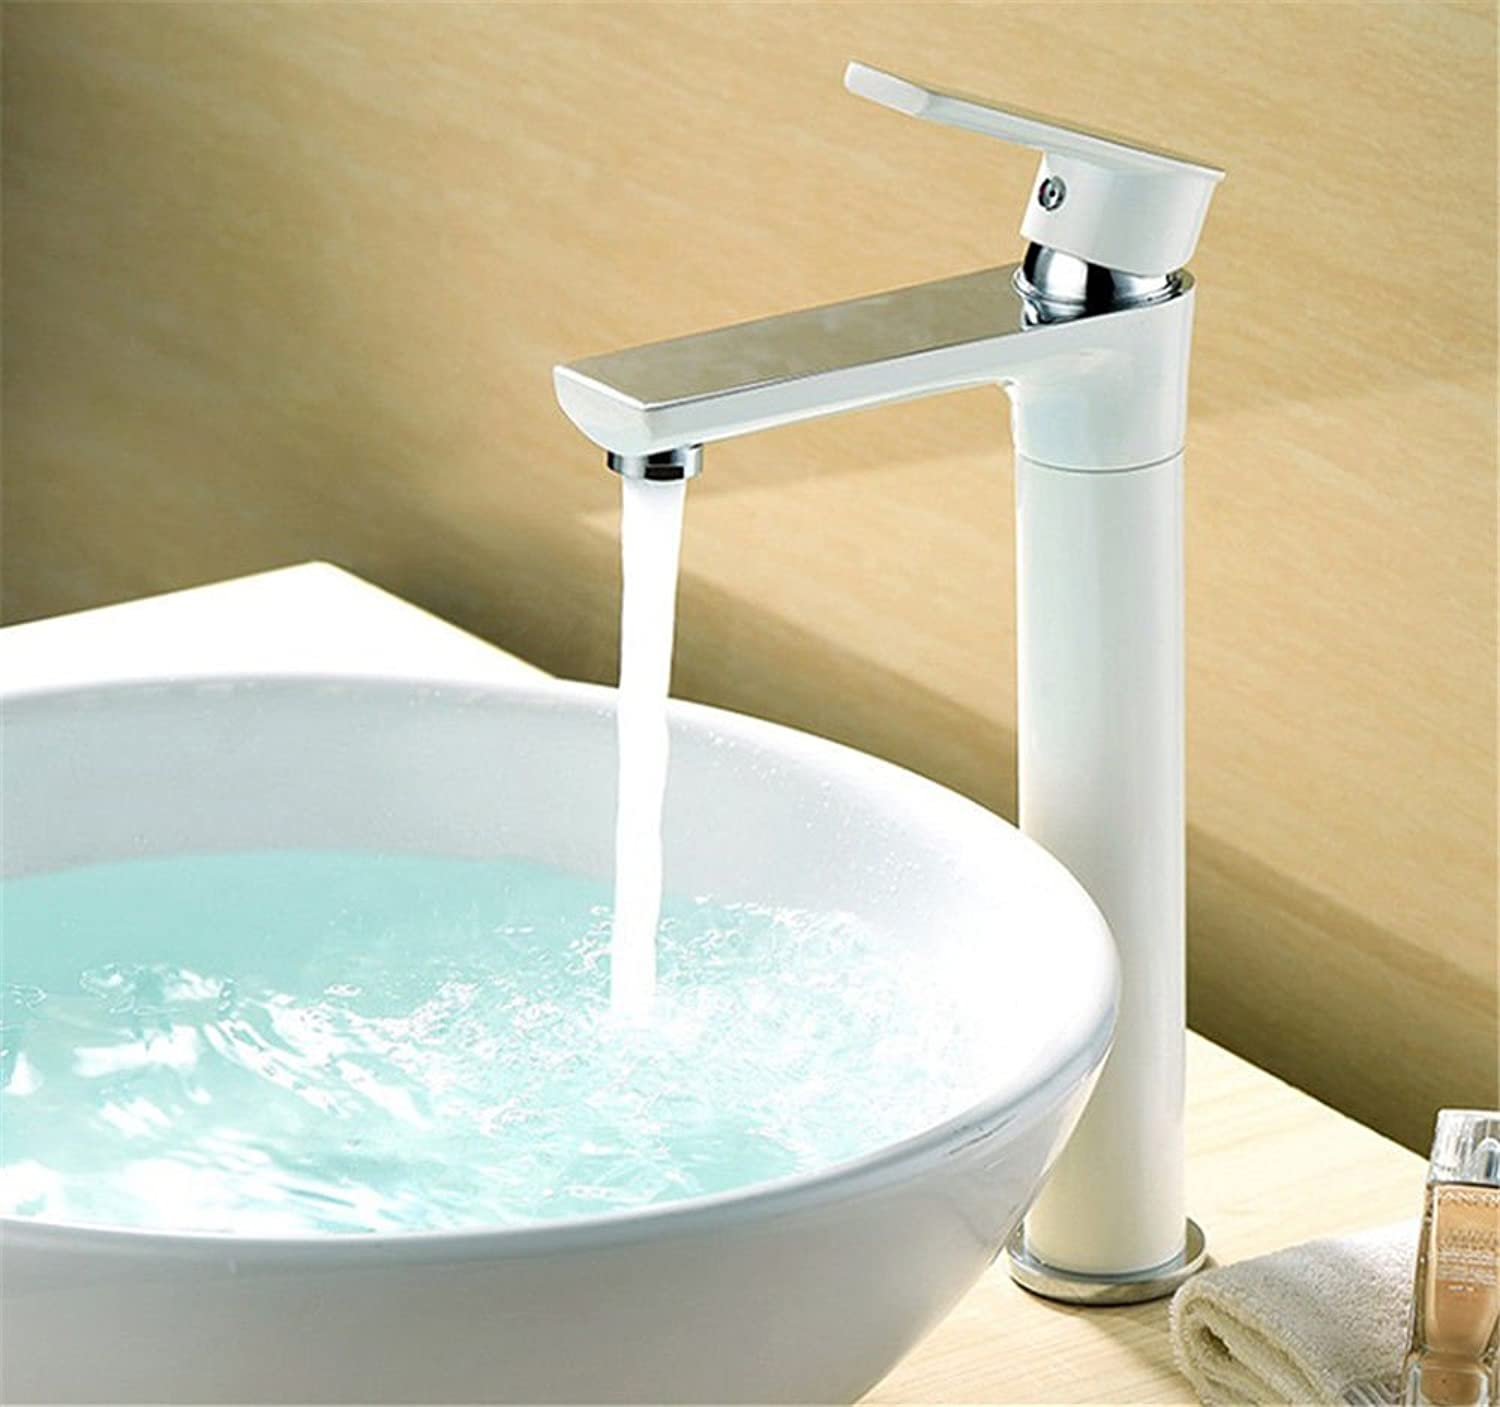 AQMMi Basin Taps Bathroom Sink Faucet Brass Hot and Cold Water White Stoving Lacquer Single Lever 1 Hole Single Lever Bathroom Sink Faucet Basin Mixer Tap